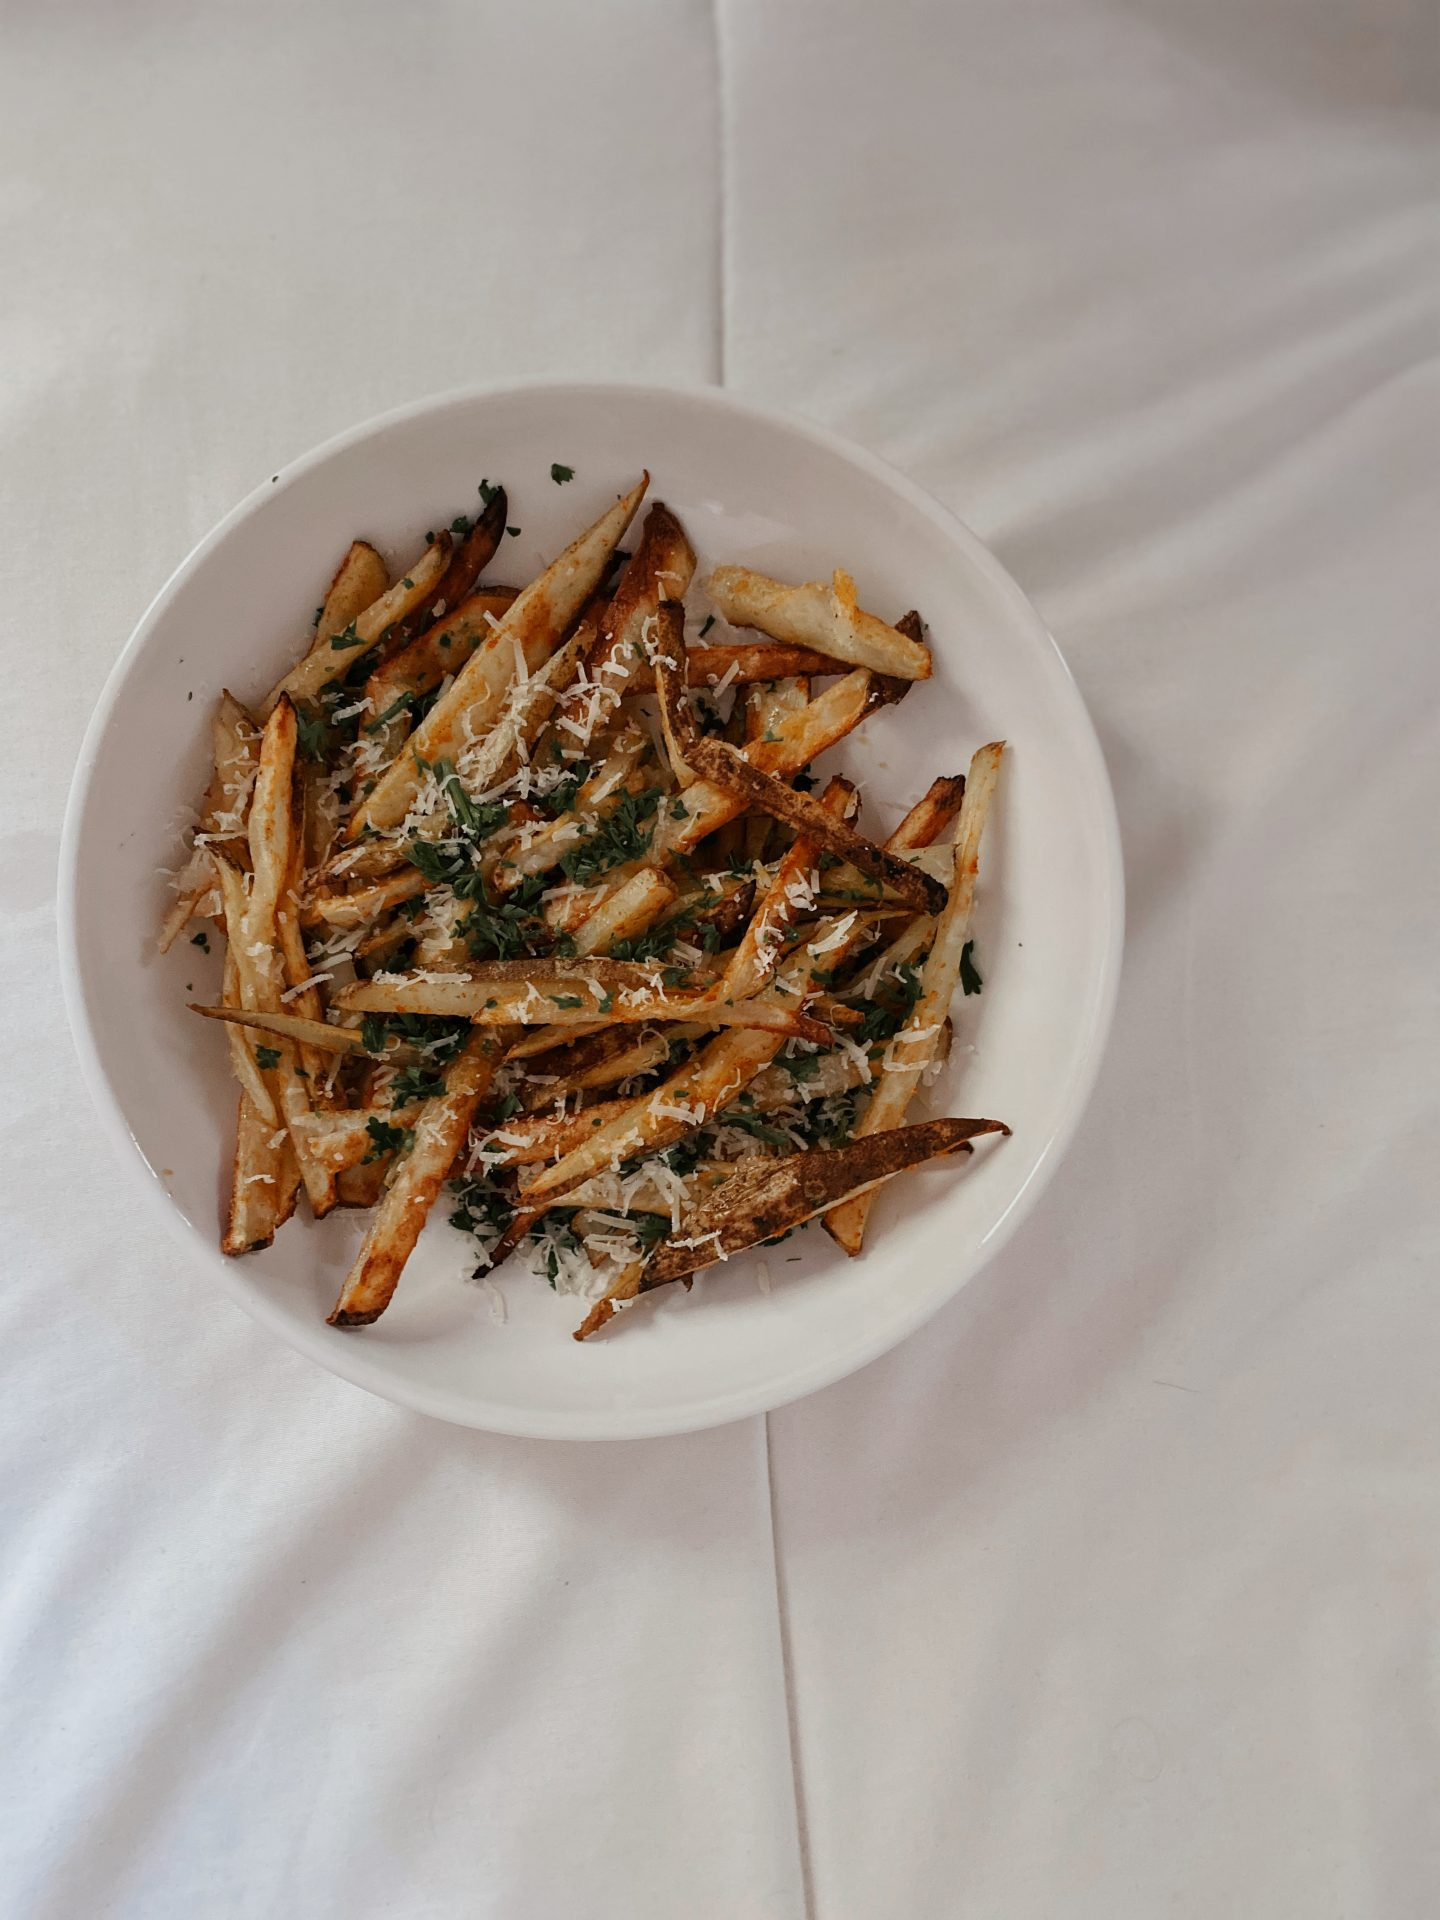 Parmesan Parsley Oven Baked Fries